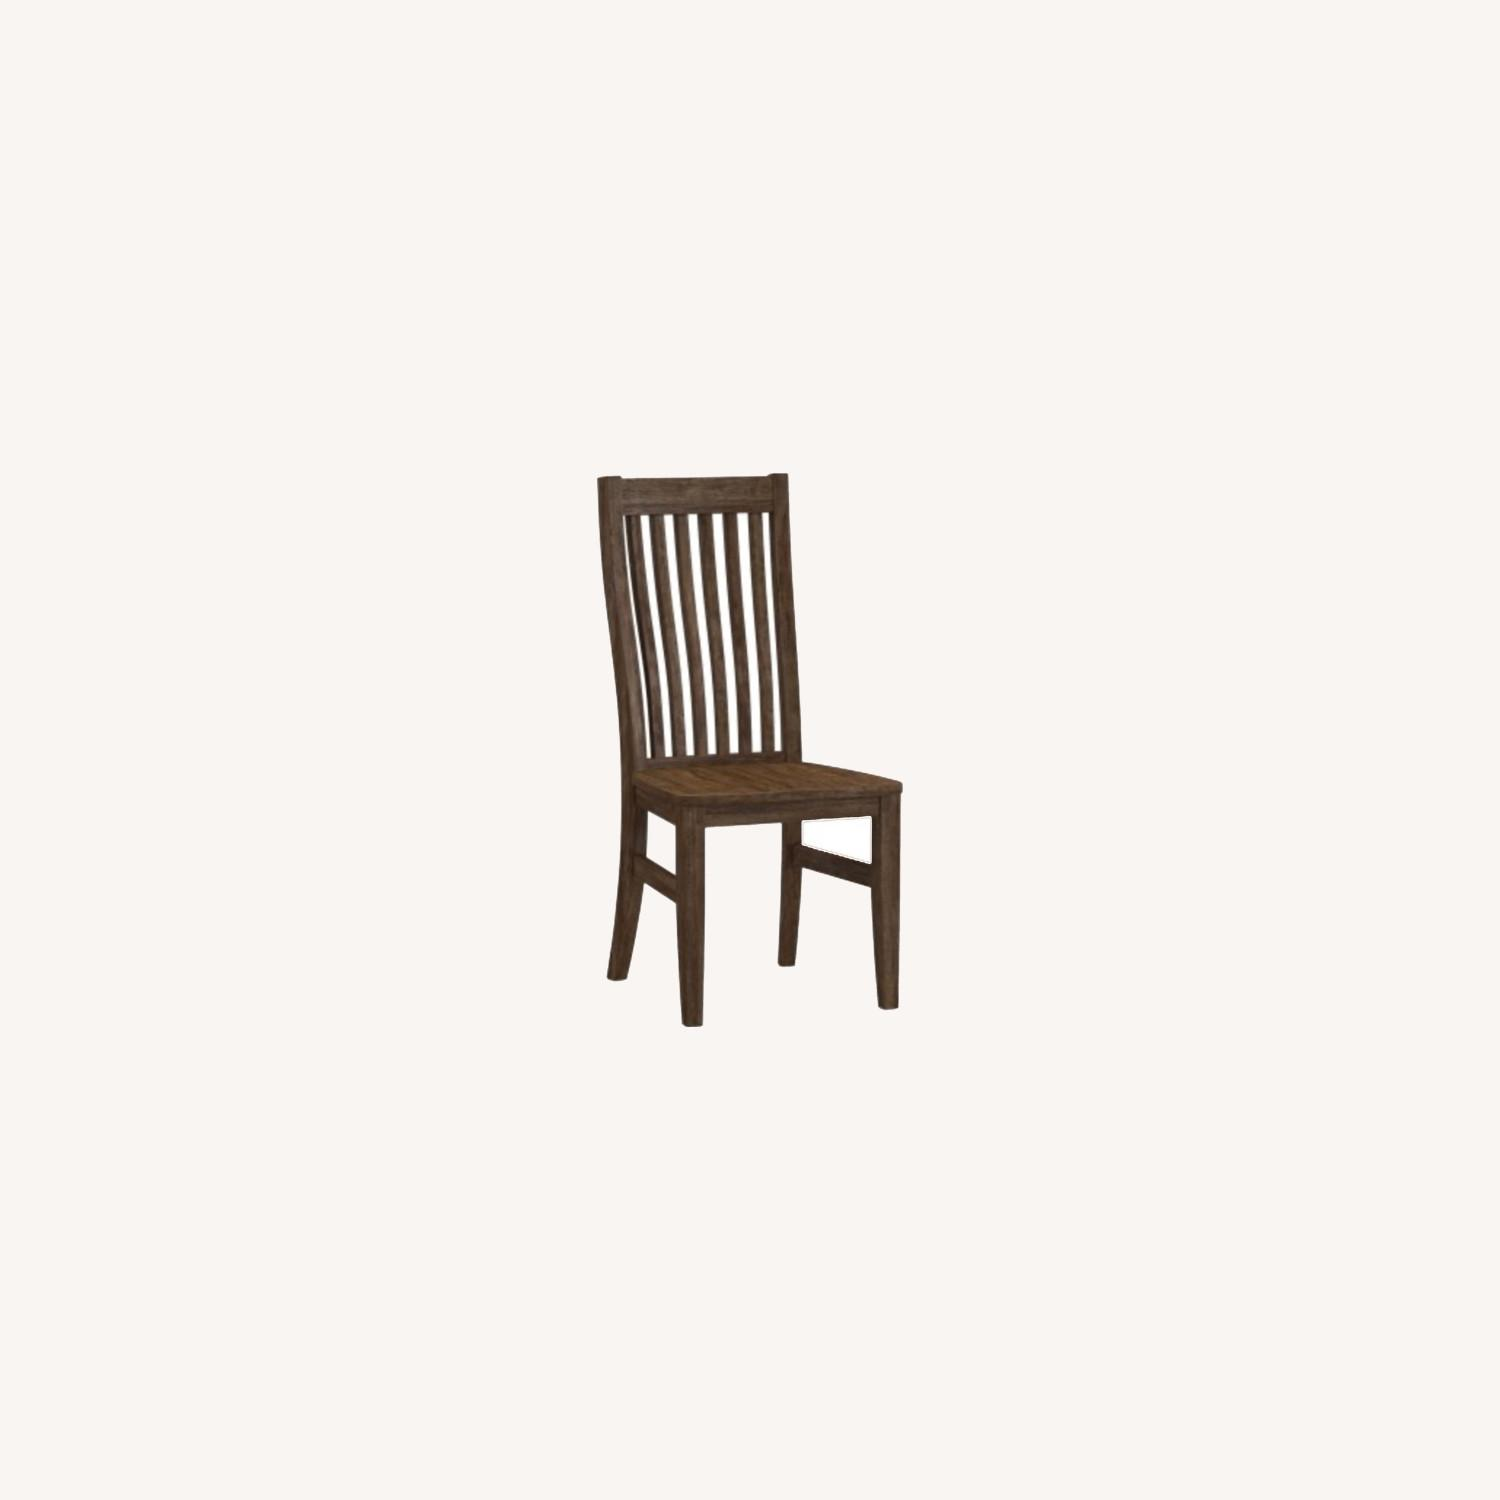 Pottery Barn Rustic Mahogany Trieste Chairs - image-0